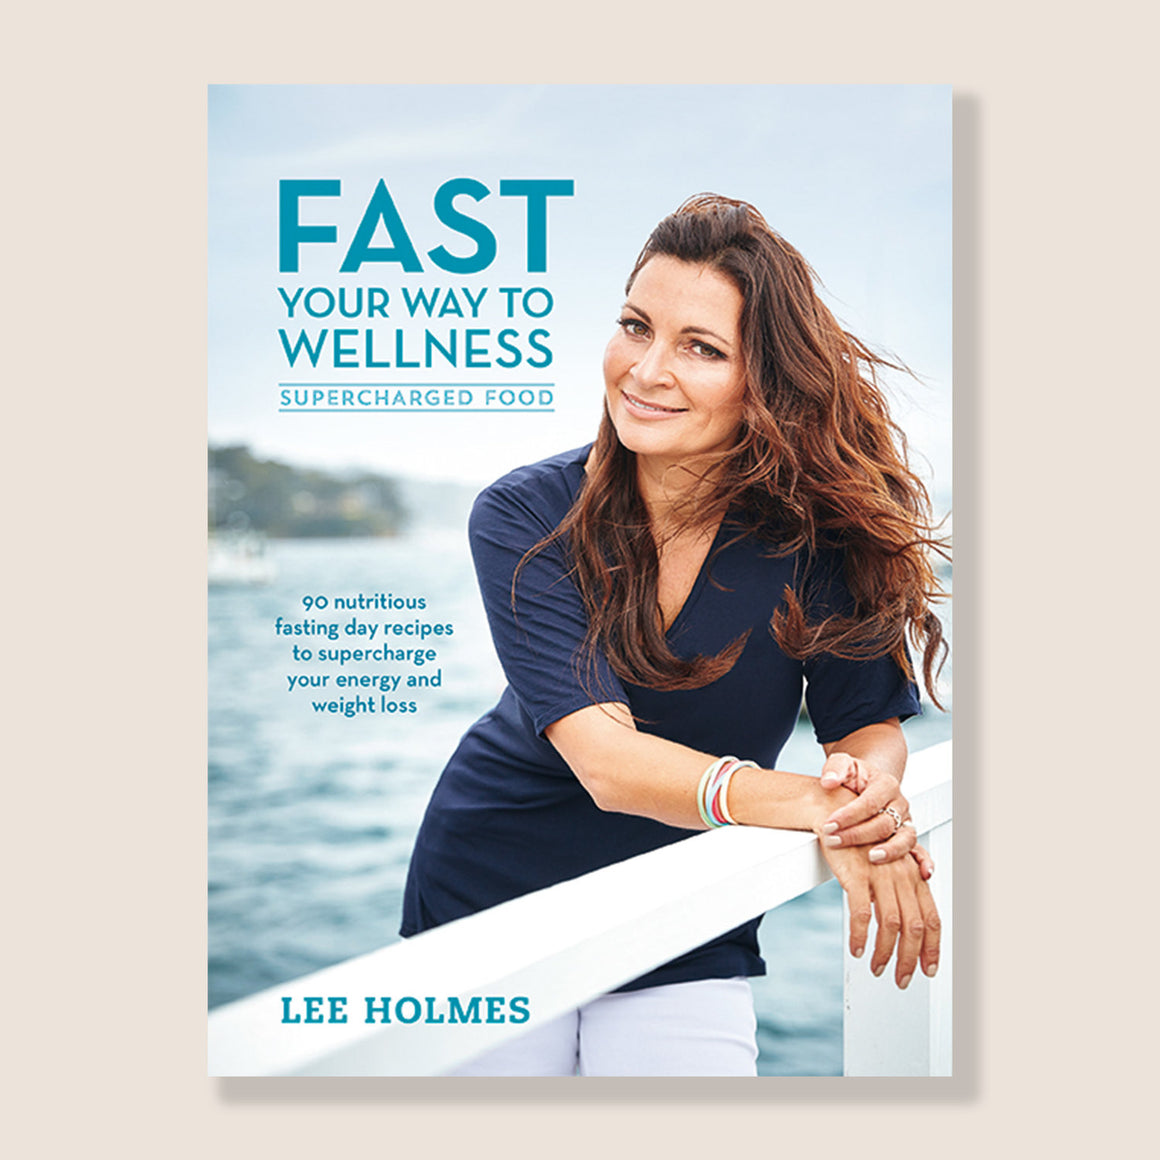 FAST YOUR WAY TO WELLNESS BOOK BY LEE HOLMES